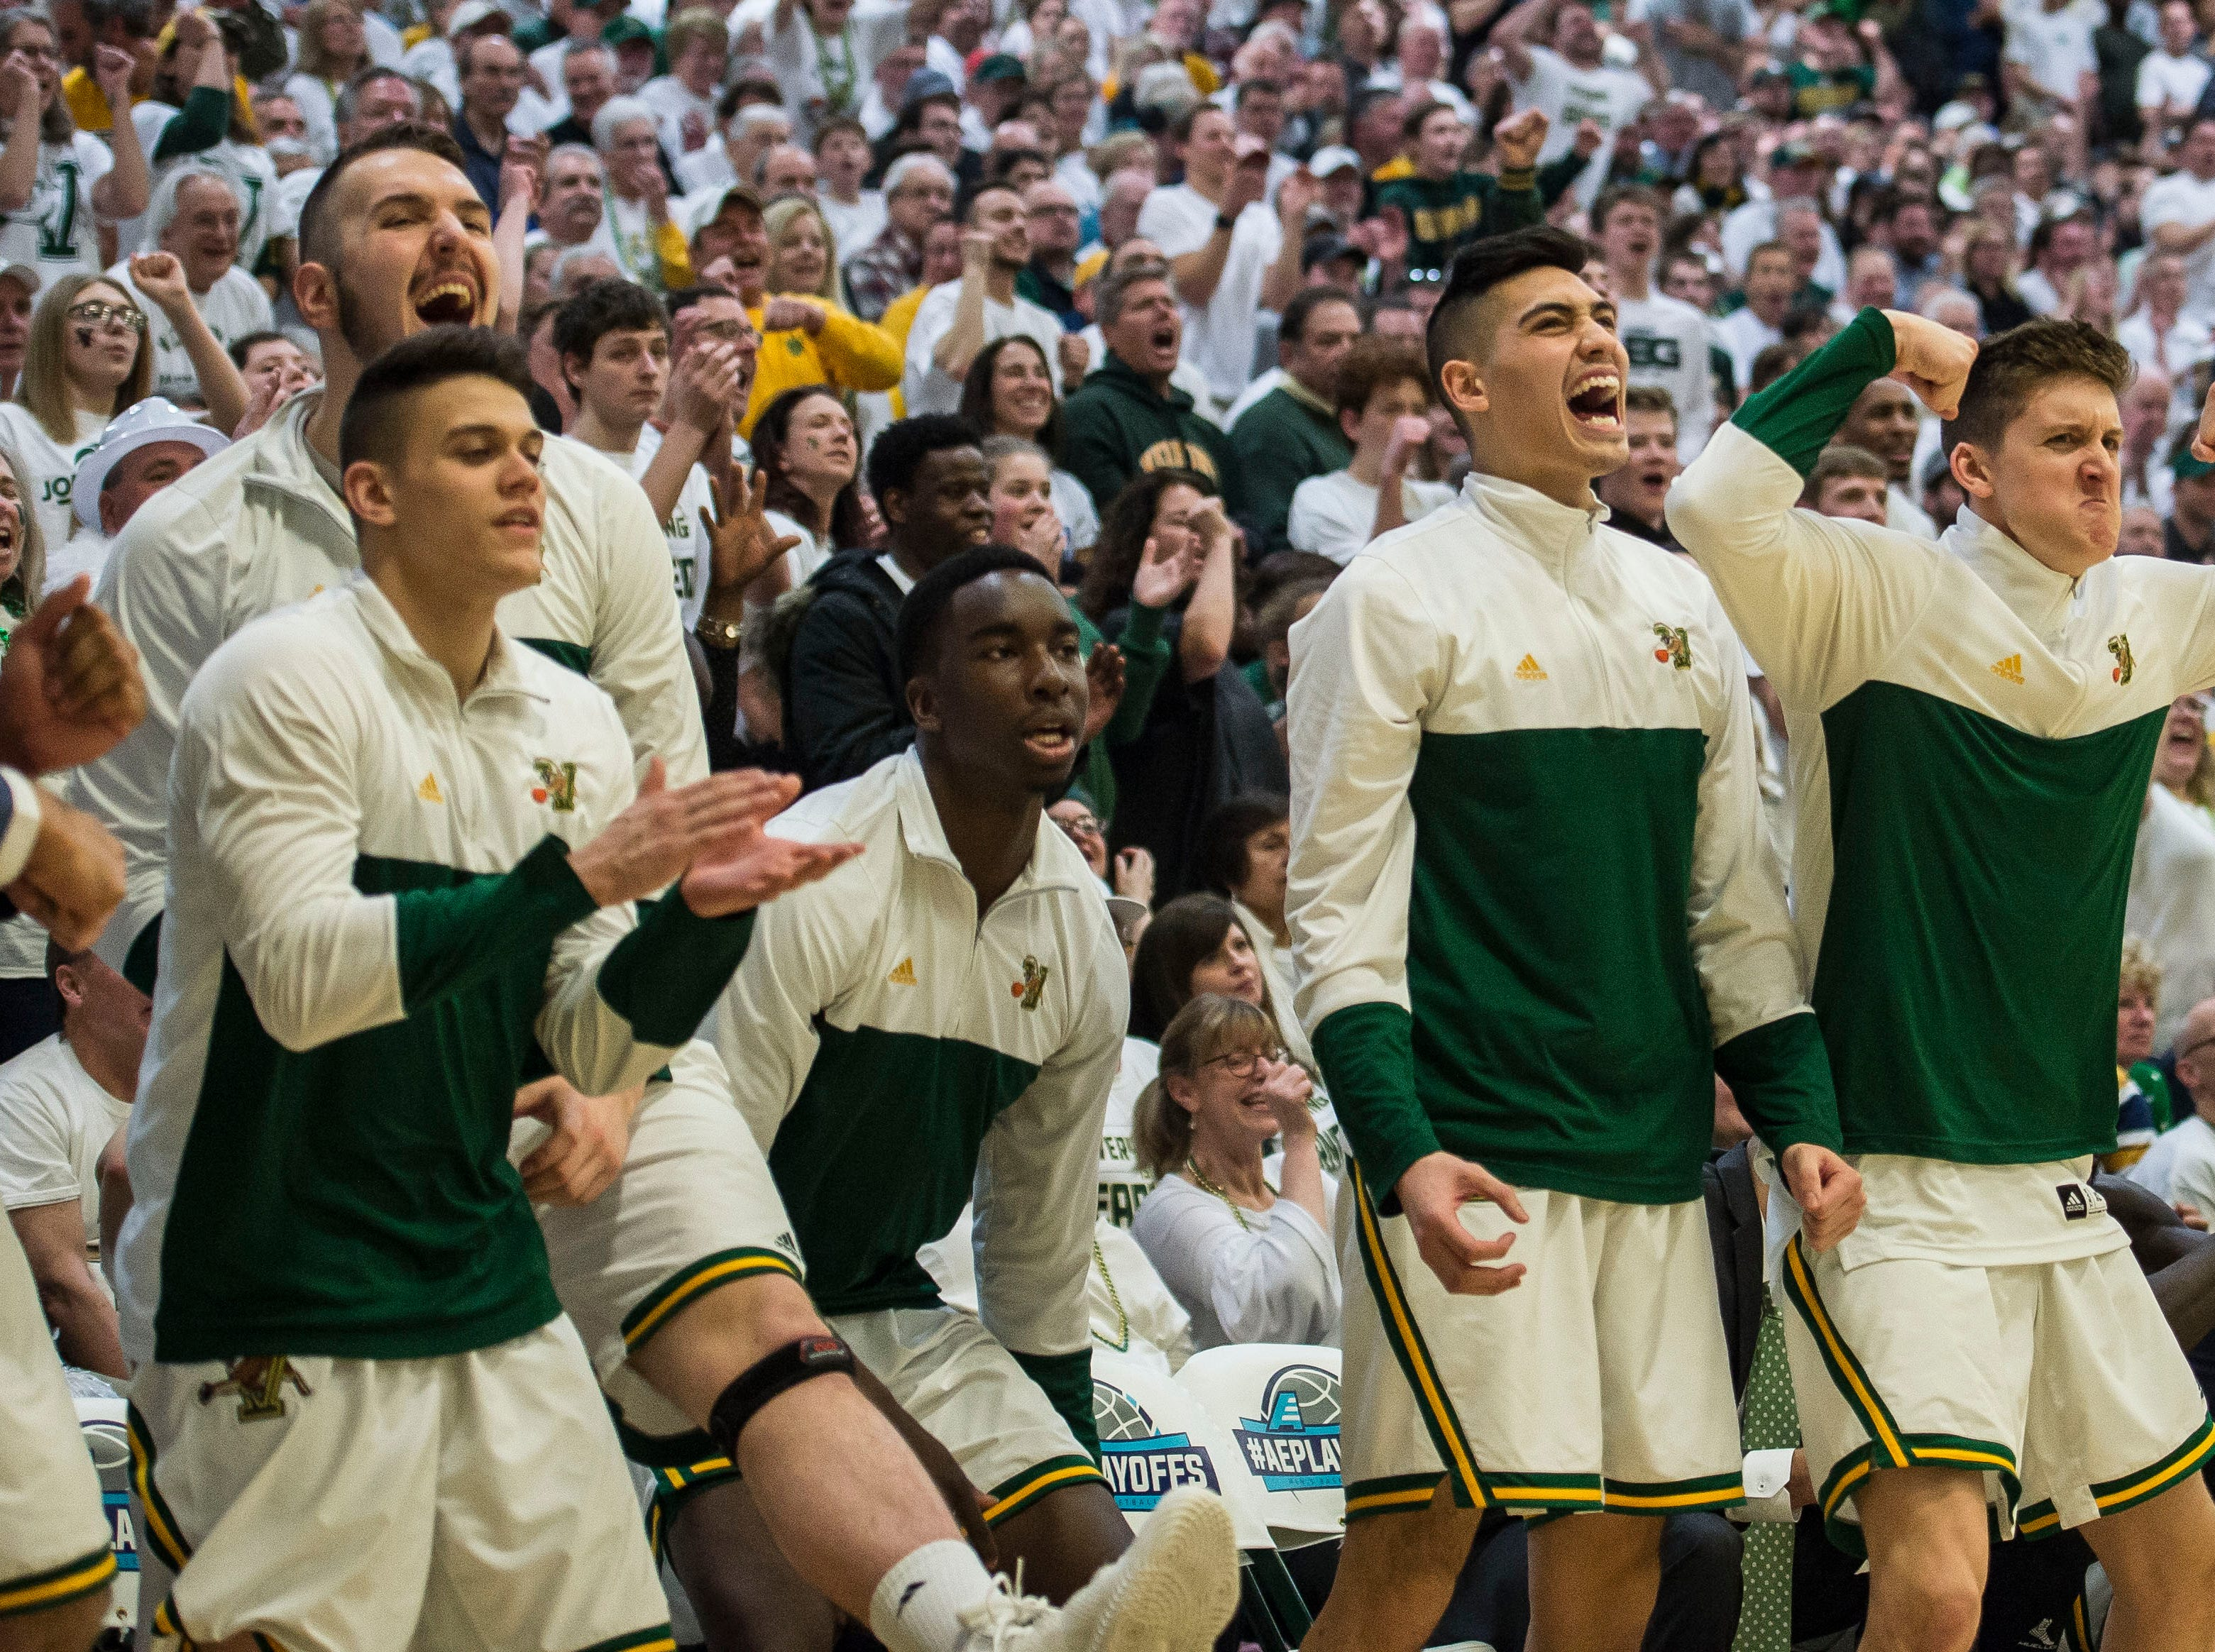 The UVM men's basketball team reacts to a 3-point shot from Ben Shungu during the America East Championship in Burlington, Vt., on Saturday, March 16, 2019. UVM won, 66-49 and will head to the NCAA March Madness Tournament.